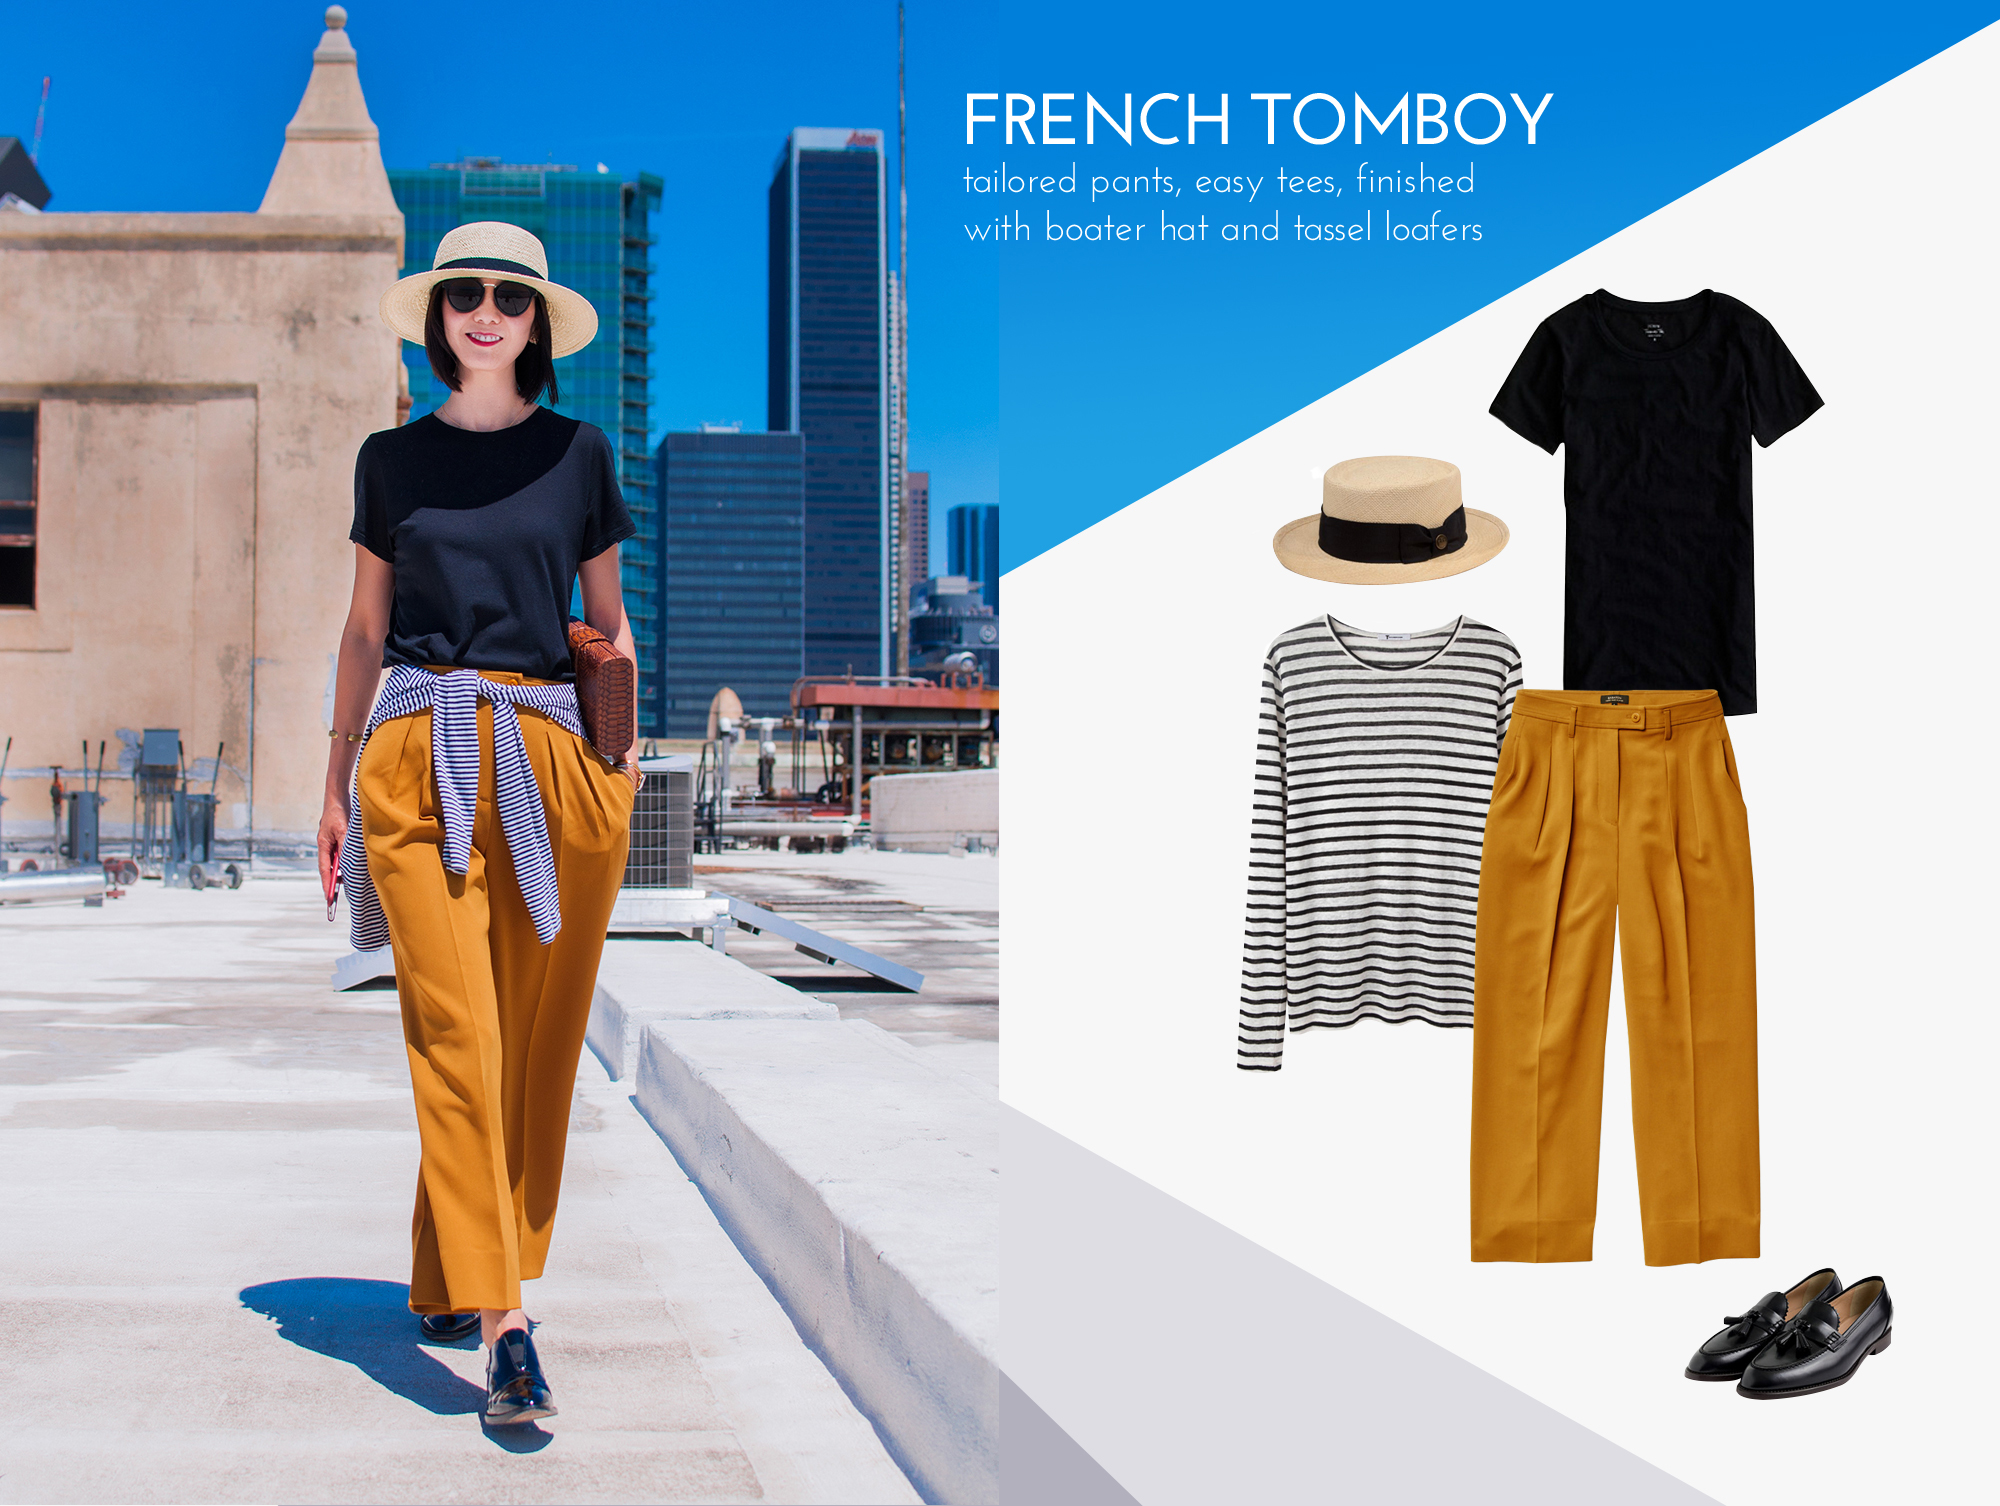 French Tomboy